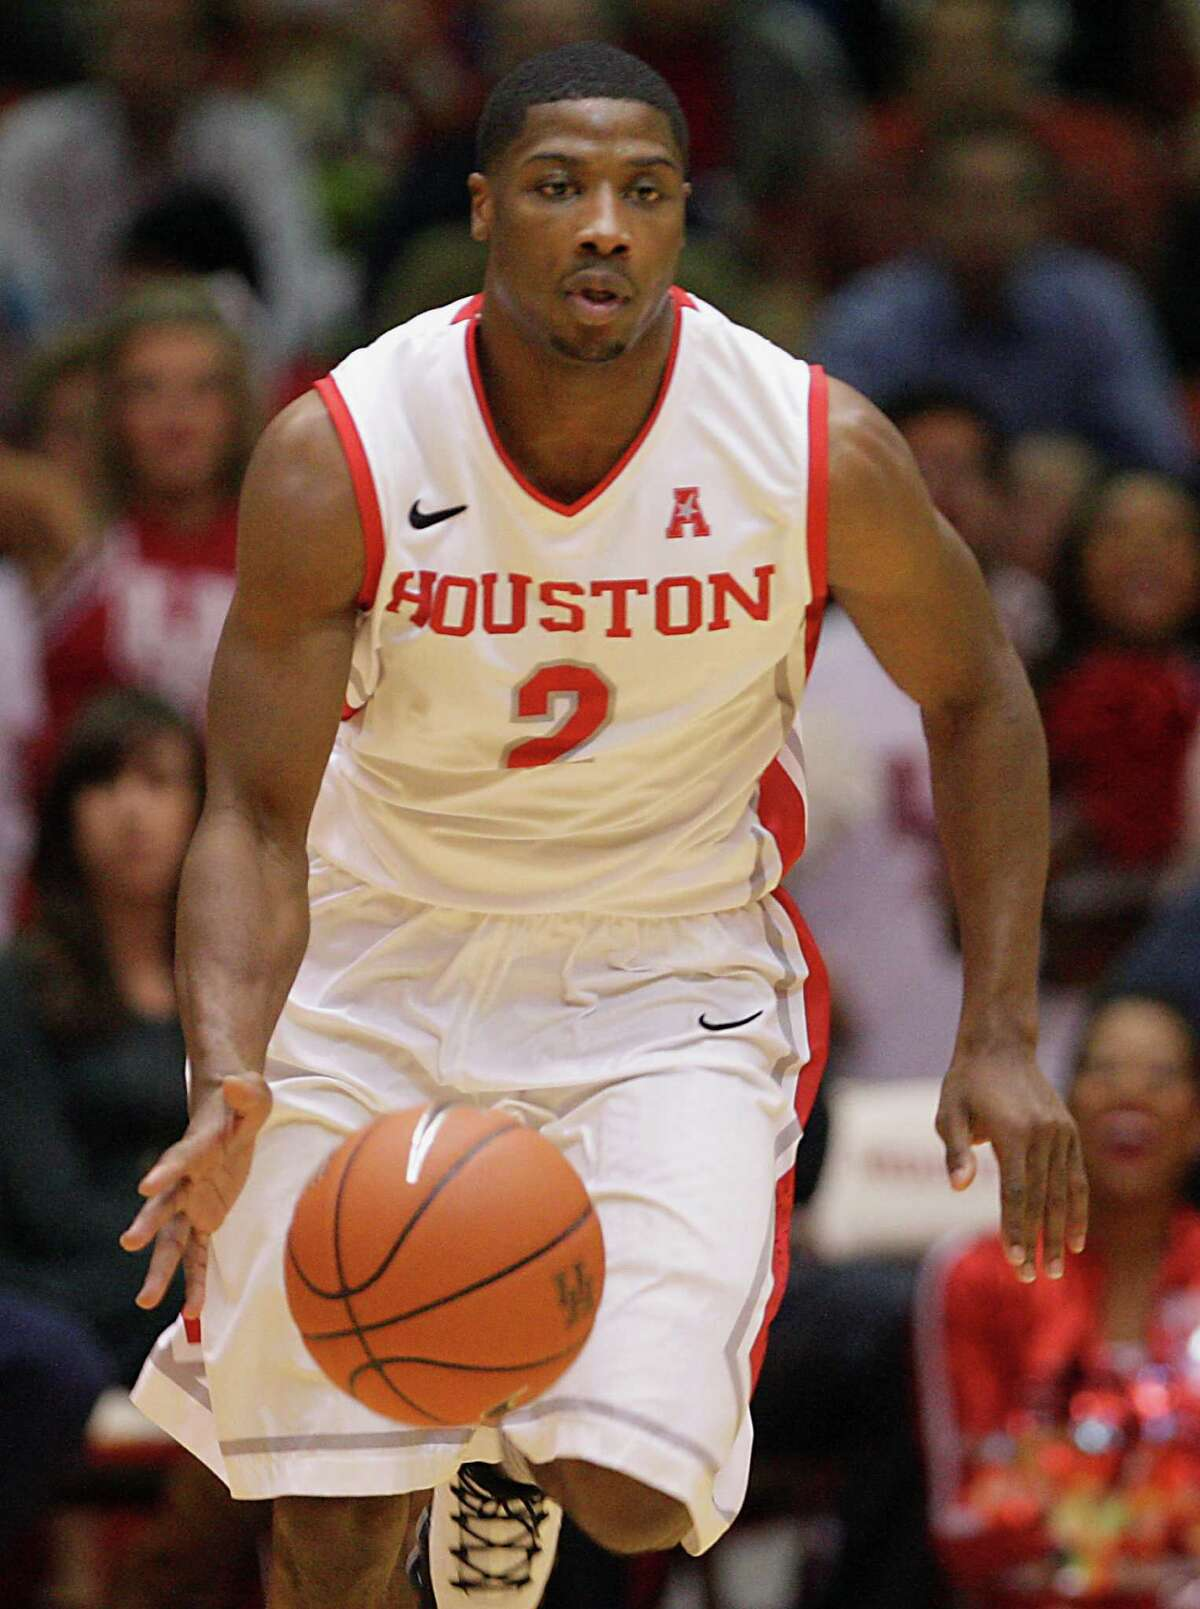 University of Houston guard Brandon Morris moves the down court against Louisville during the second half of men's college basketball game action at U of H's Hofheinz Pavilion Wednesday, Feb. 5, 2014, in Houston.